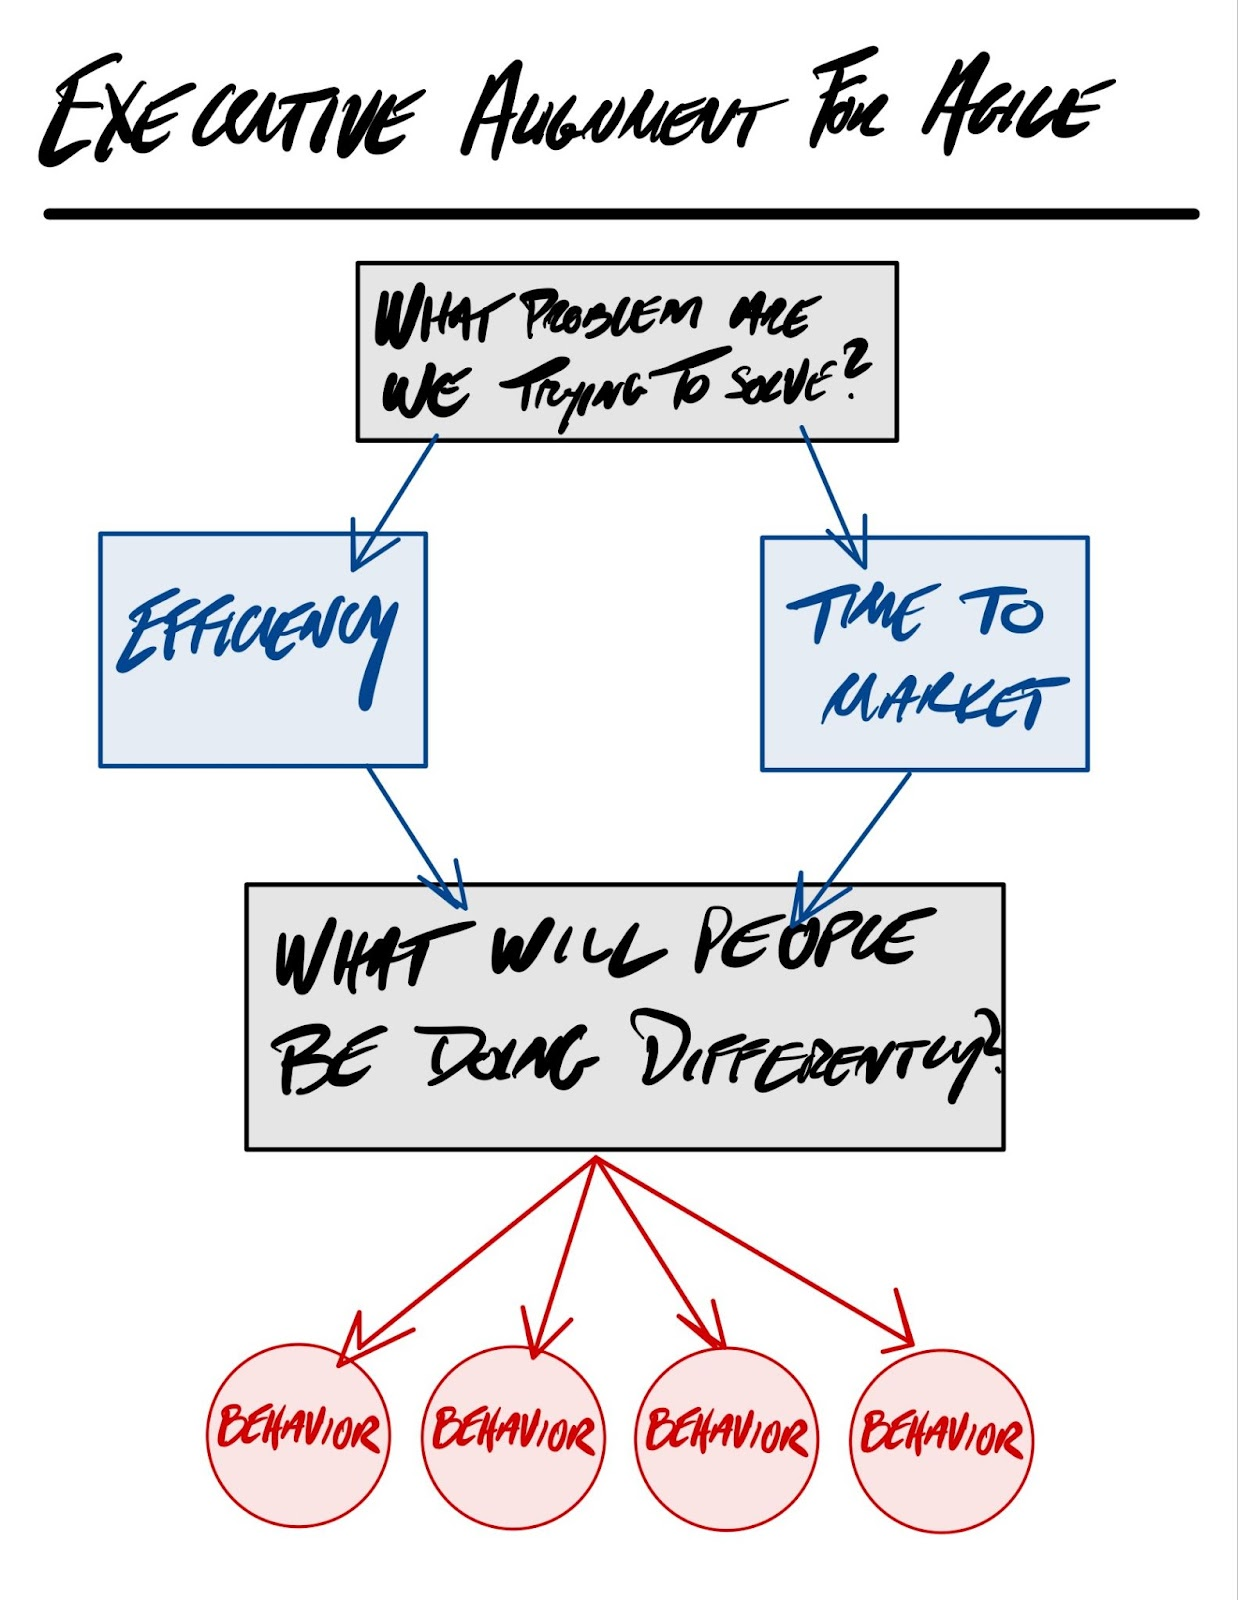 Flow chart for asking the questions listed in this article -- what problem are you trying to solve? what will people be doing differently if you solve it?